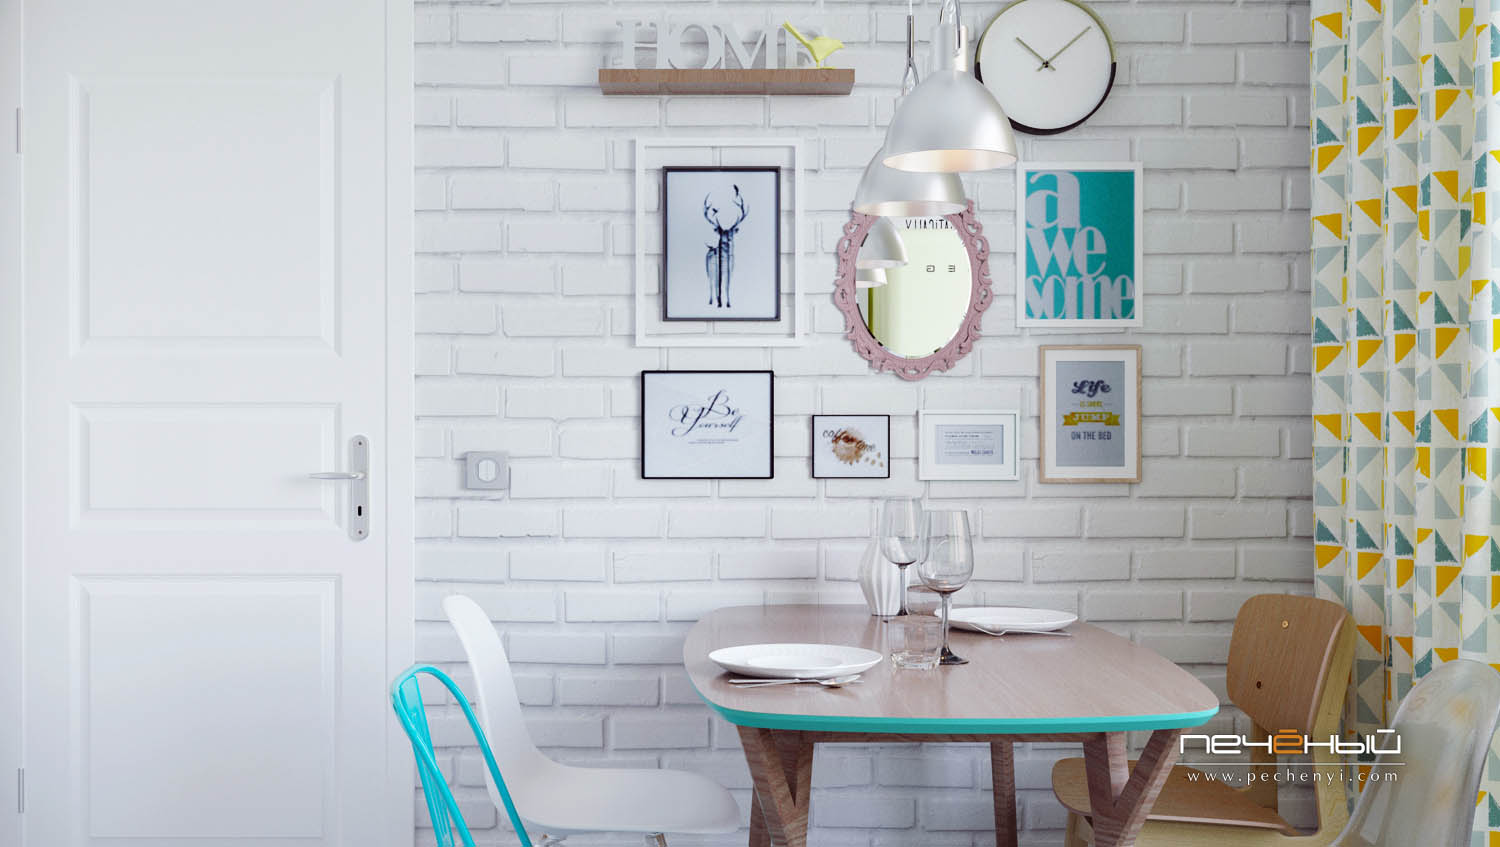 A brick wall makes the space more interesting, and it's accentuated with a gallery wall